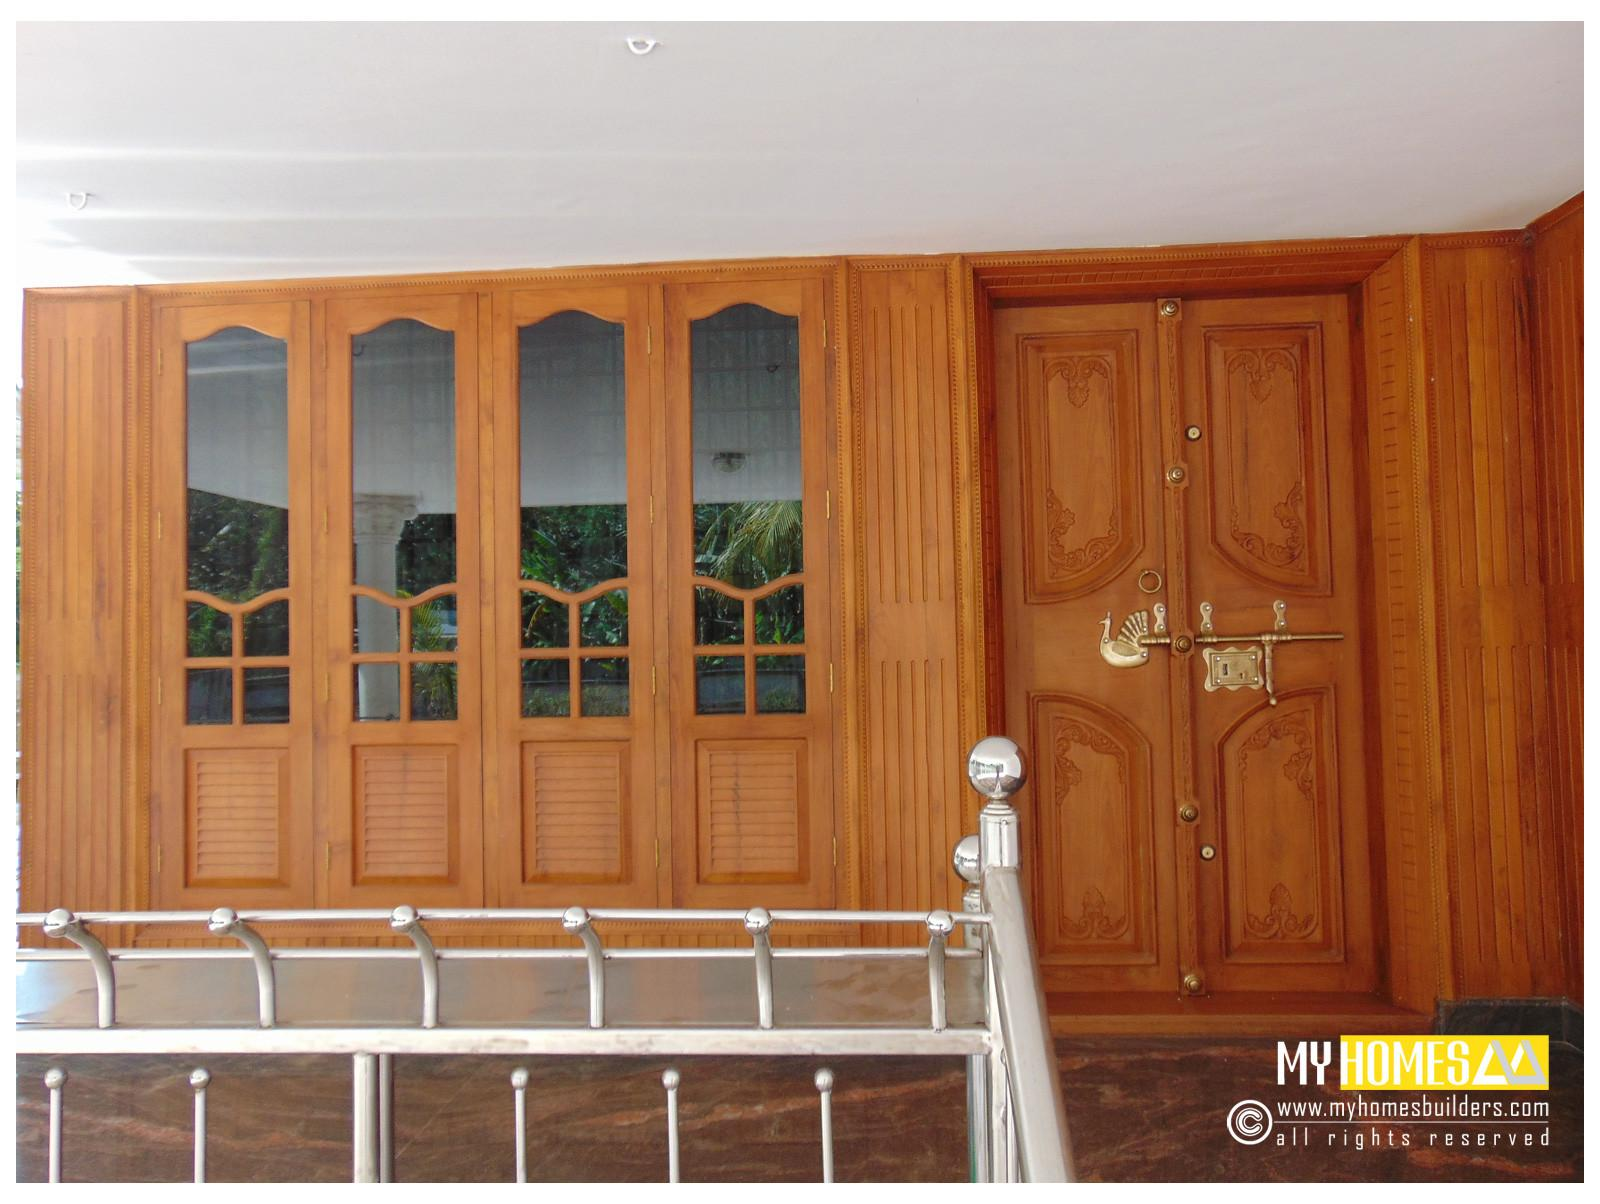 Single Double Style Door Design Kerala House India